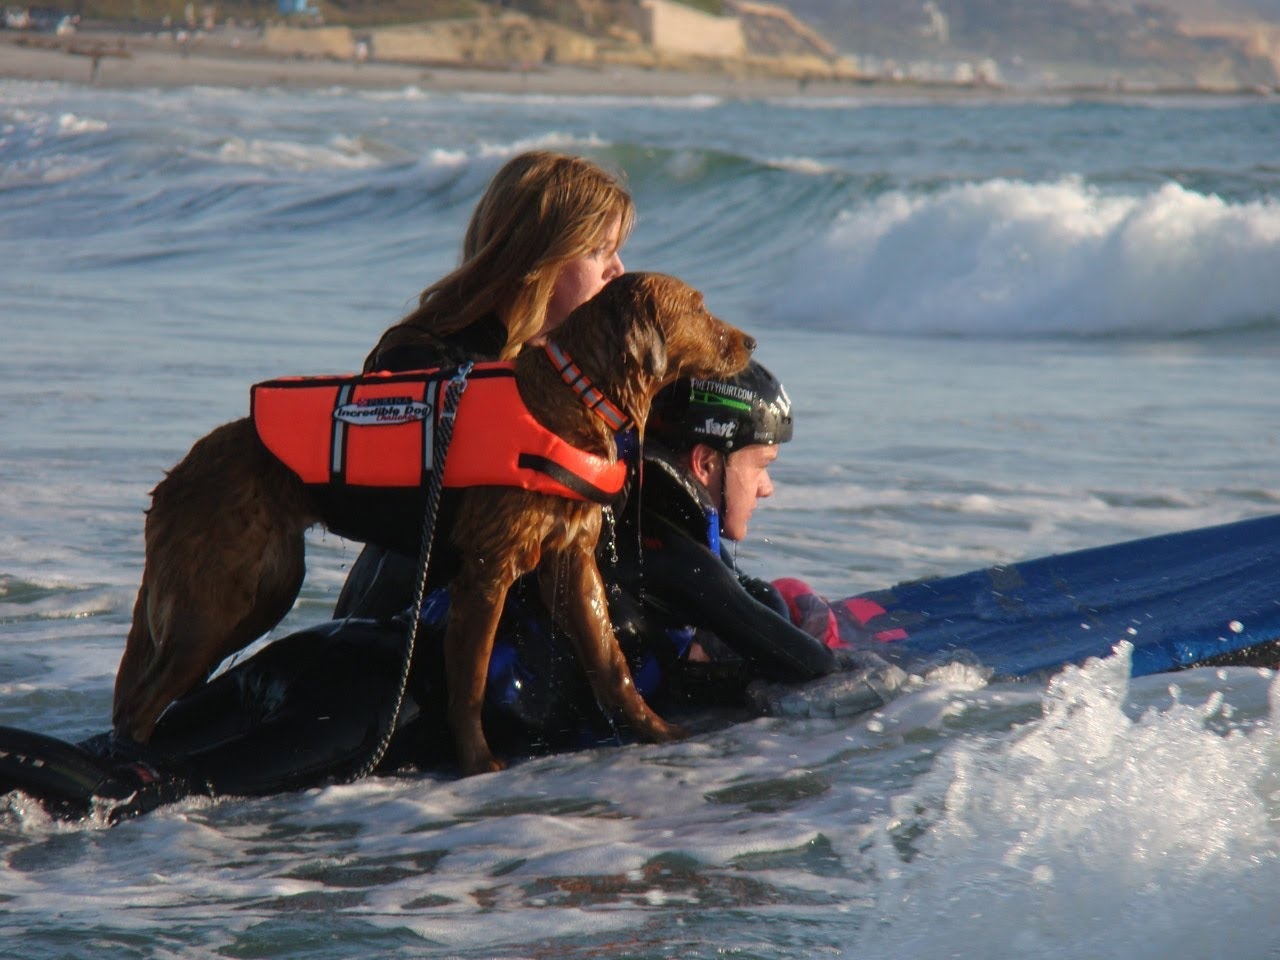 Dog Surfer